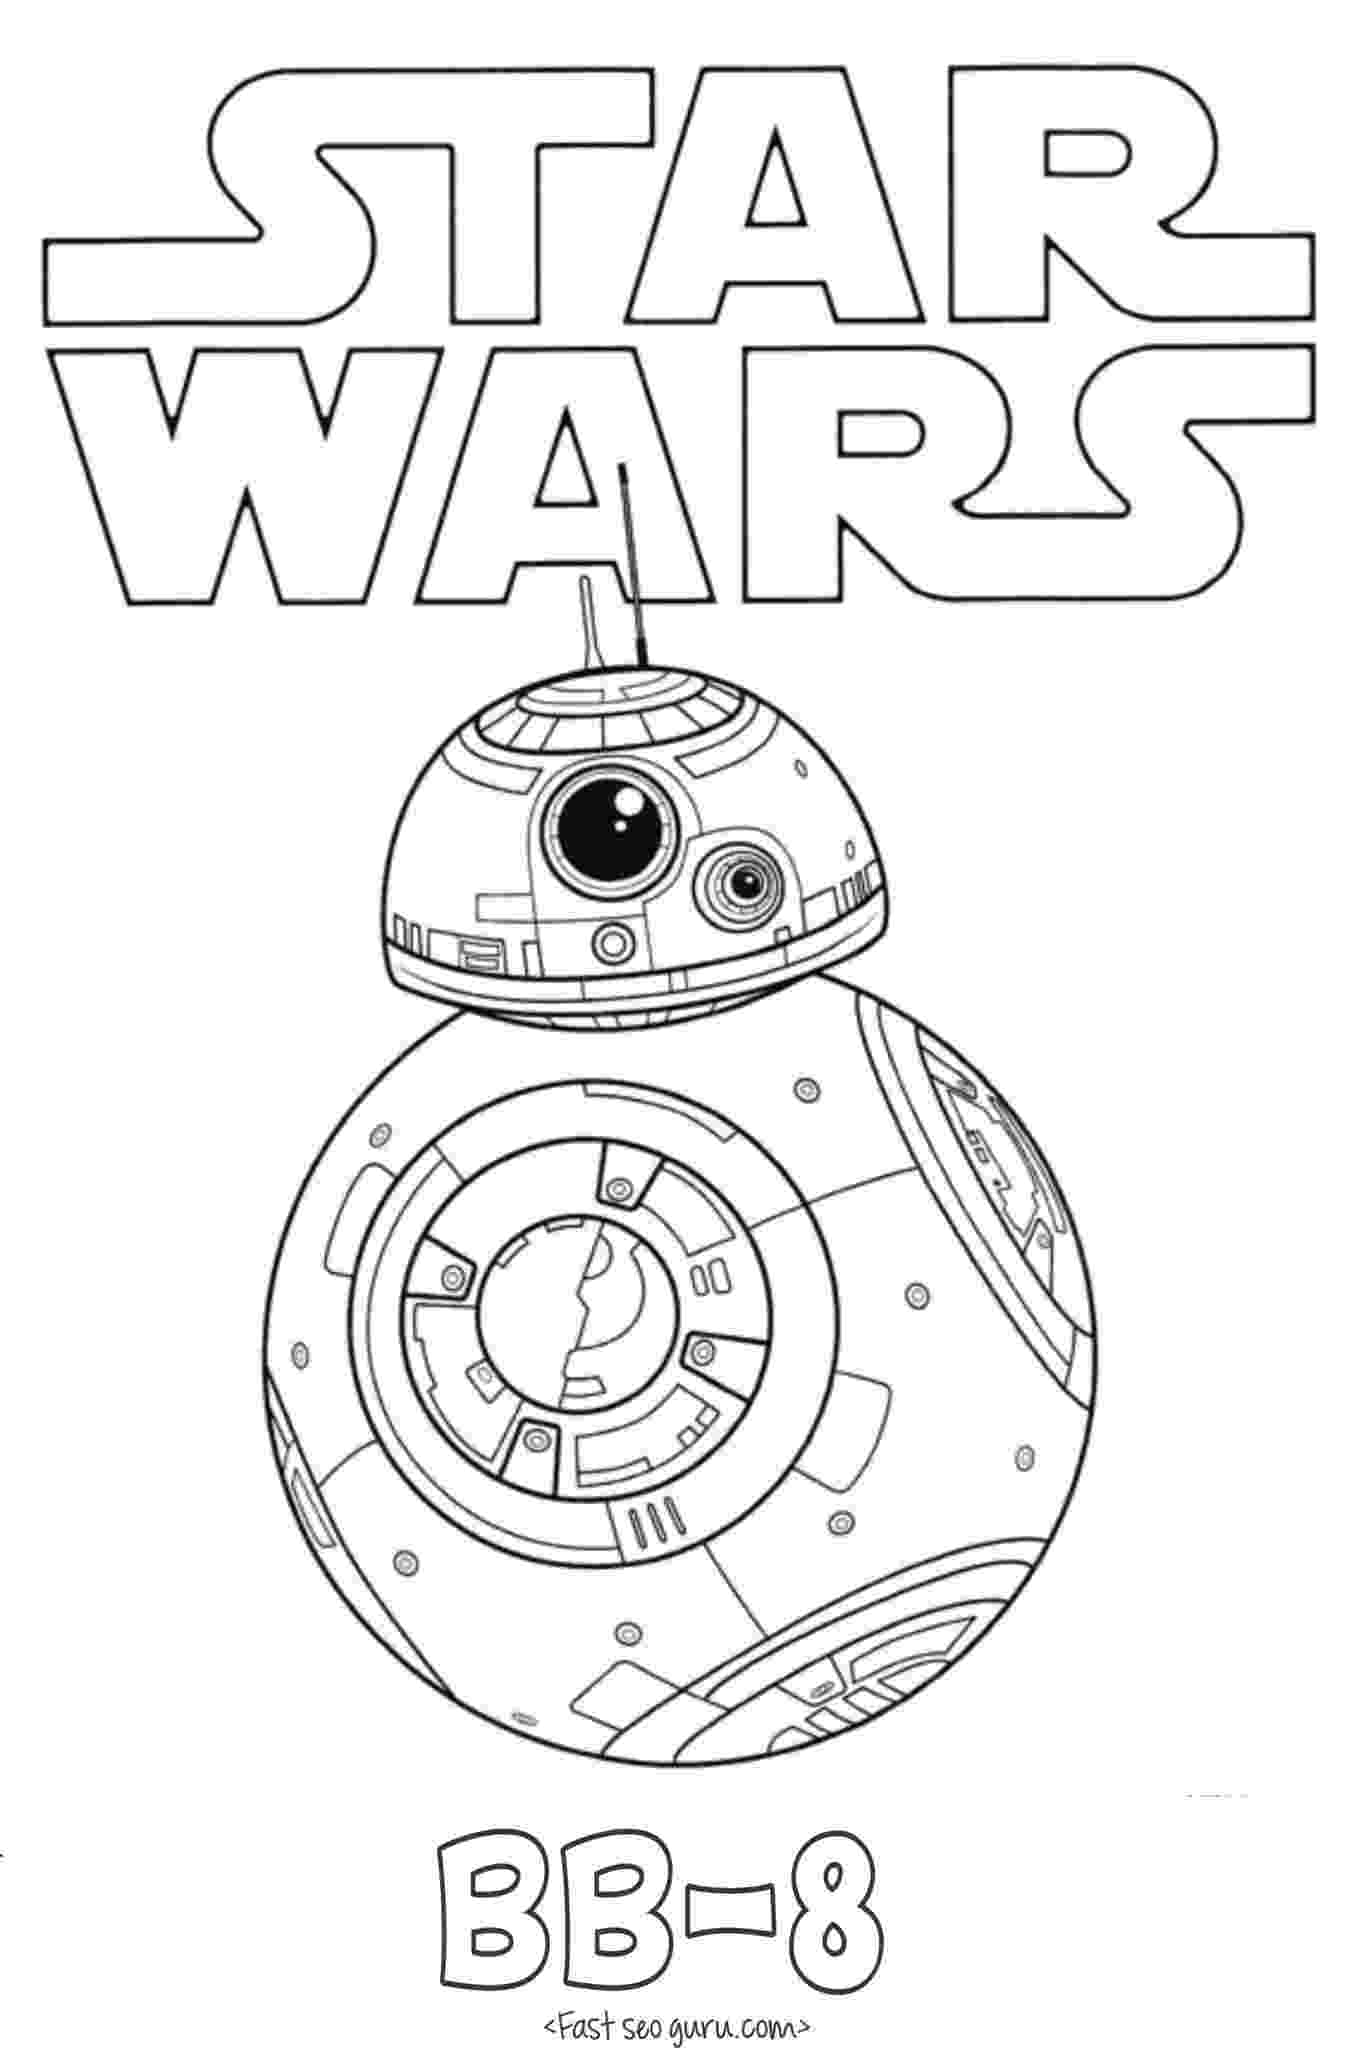 star wars printables star wars free printable coloring pages for adults kids printables wars star